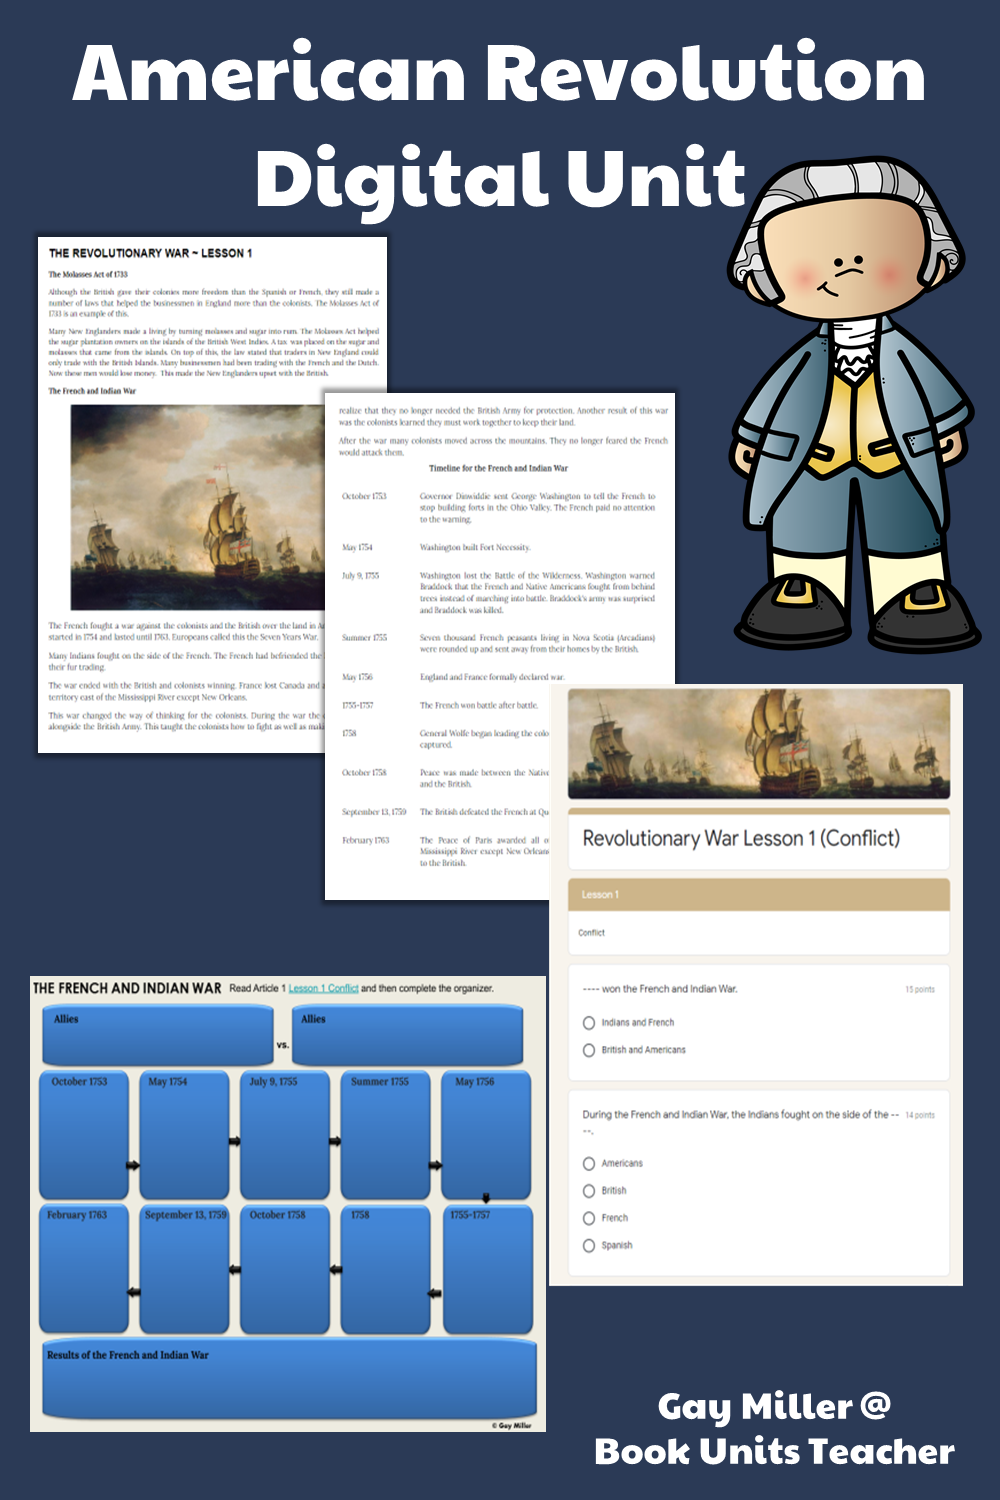 Purchase American Revolution Digital Unit on Teachers Pay Teachers. This activity is great for upper elementary including 4th, 5th, and 6th graders.